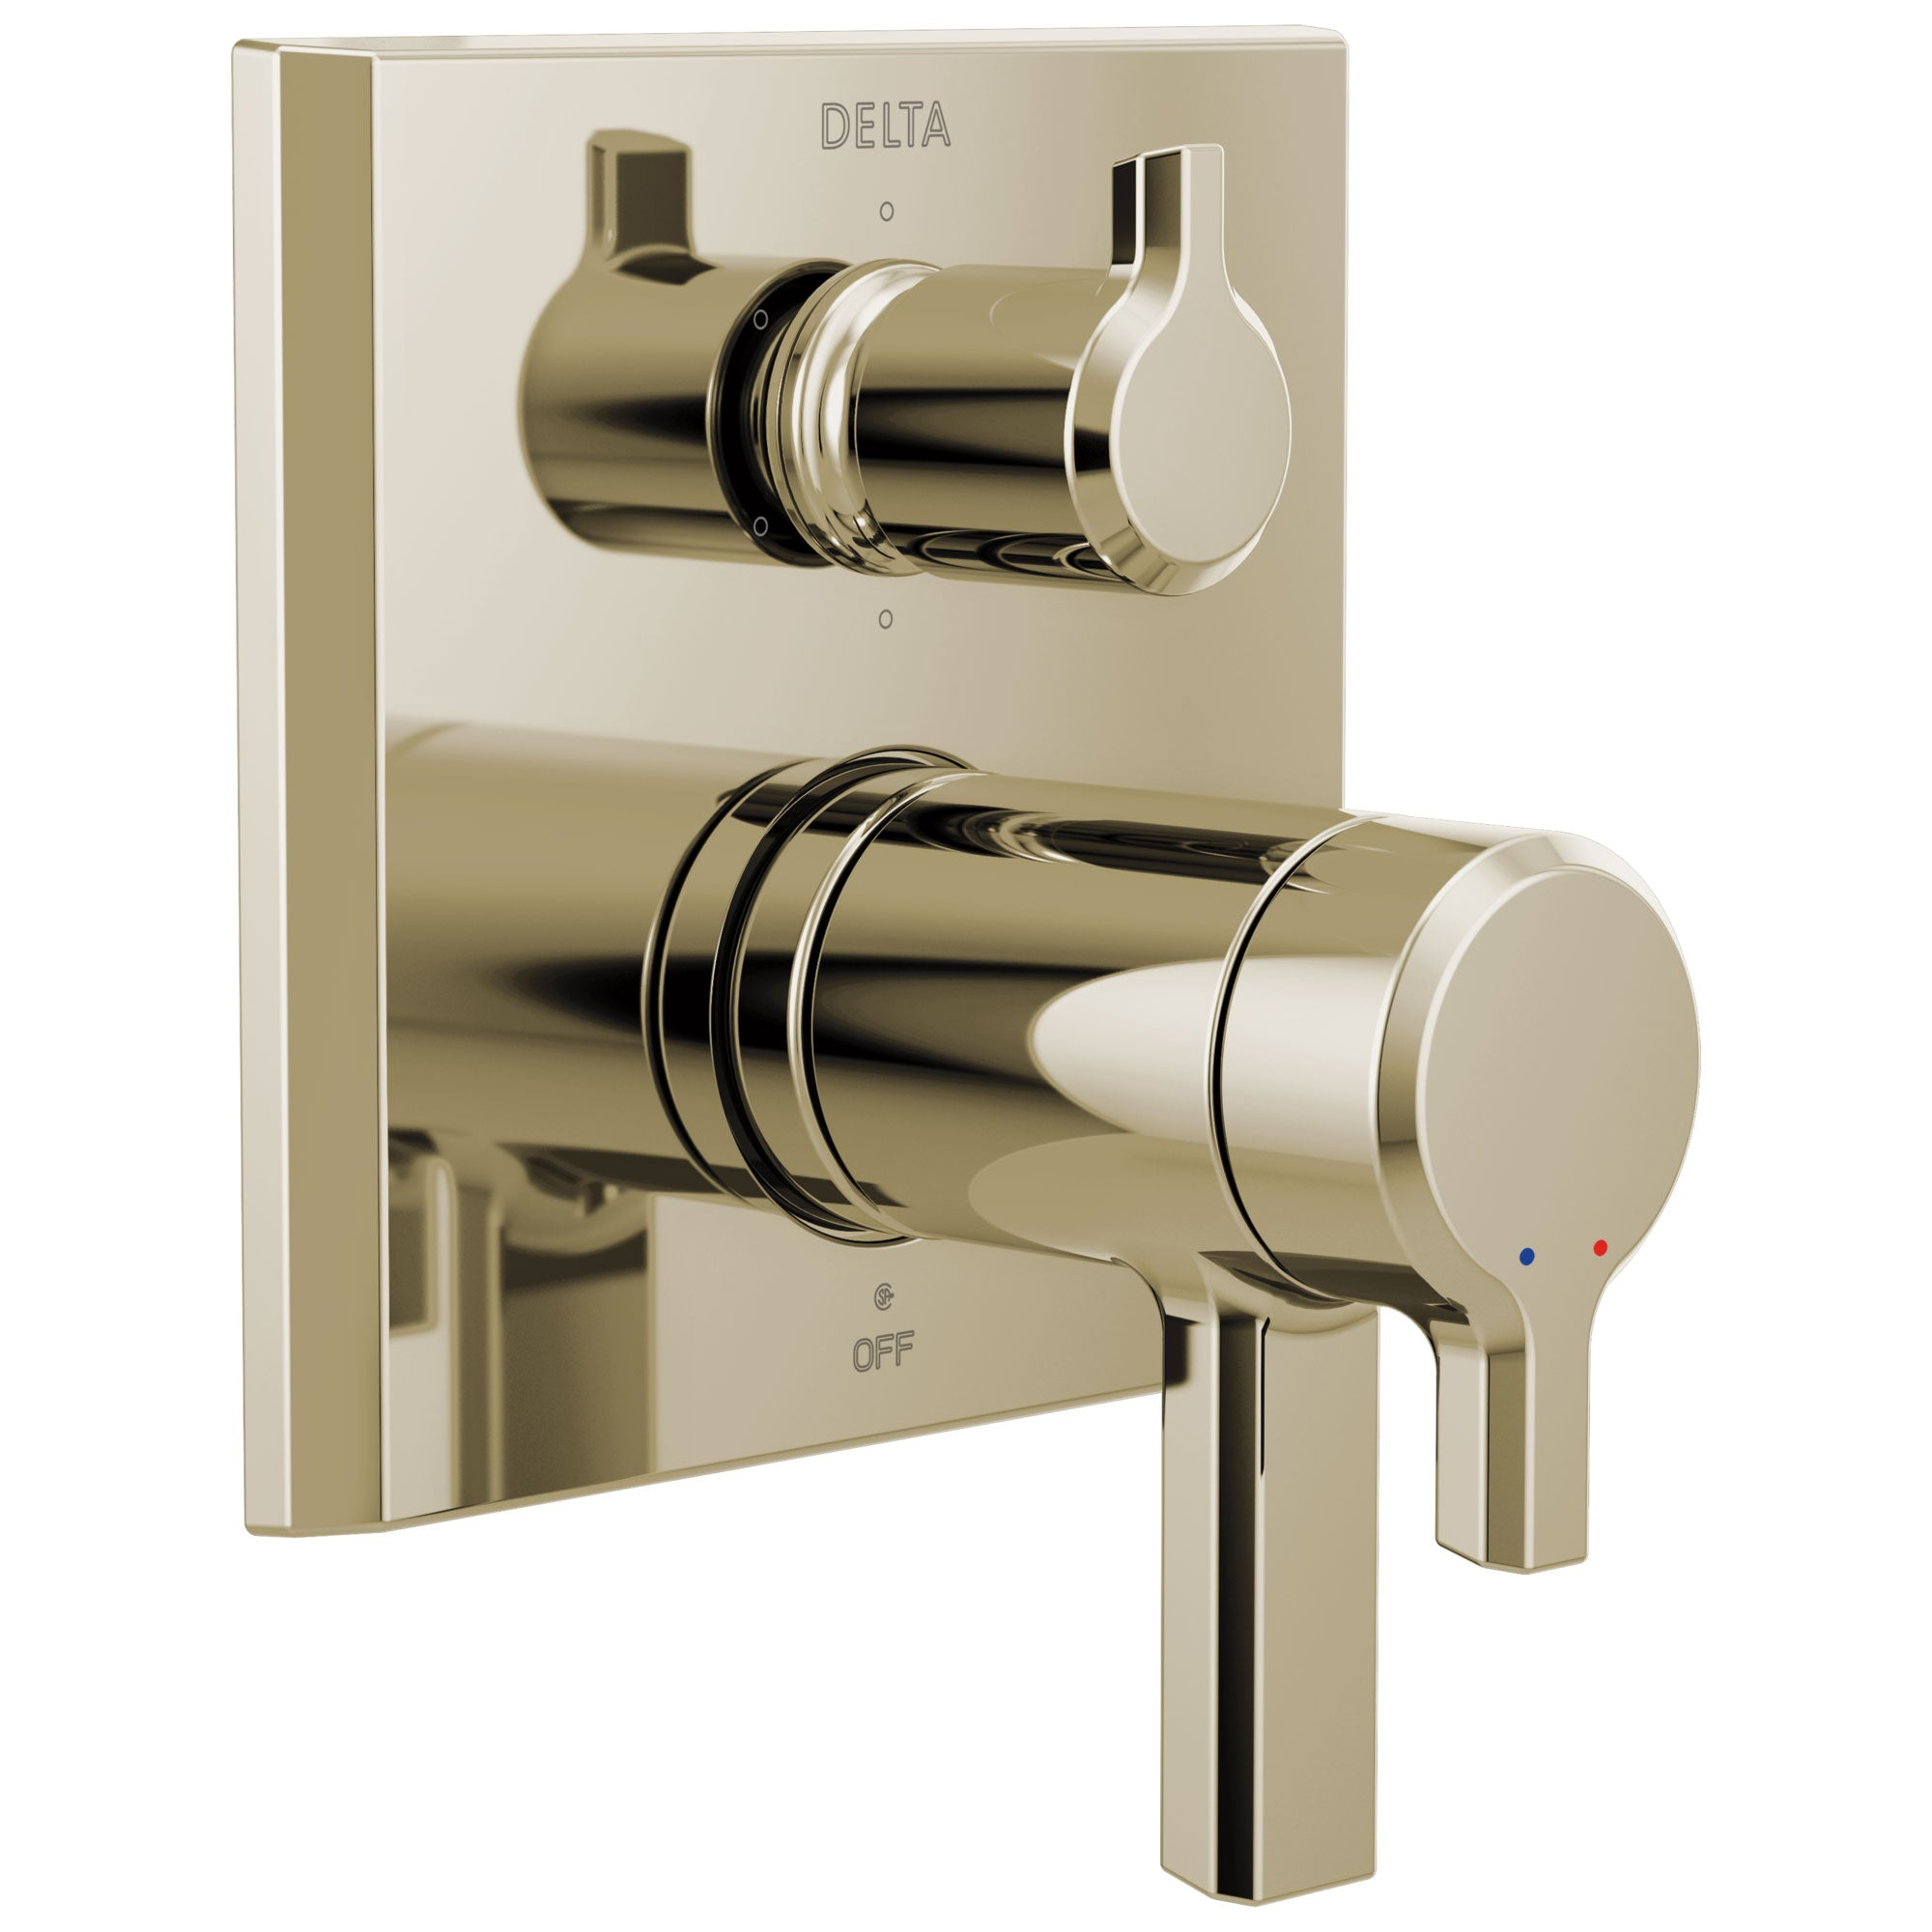 Delta Pivotal Polished Nickel Finish TempAssure 17T Series Shower Control Trim with 6-Setting Integrated Diverter (Requires Valve) DT27T999PN